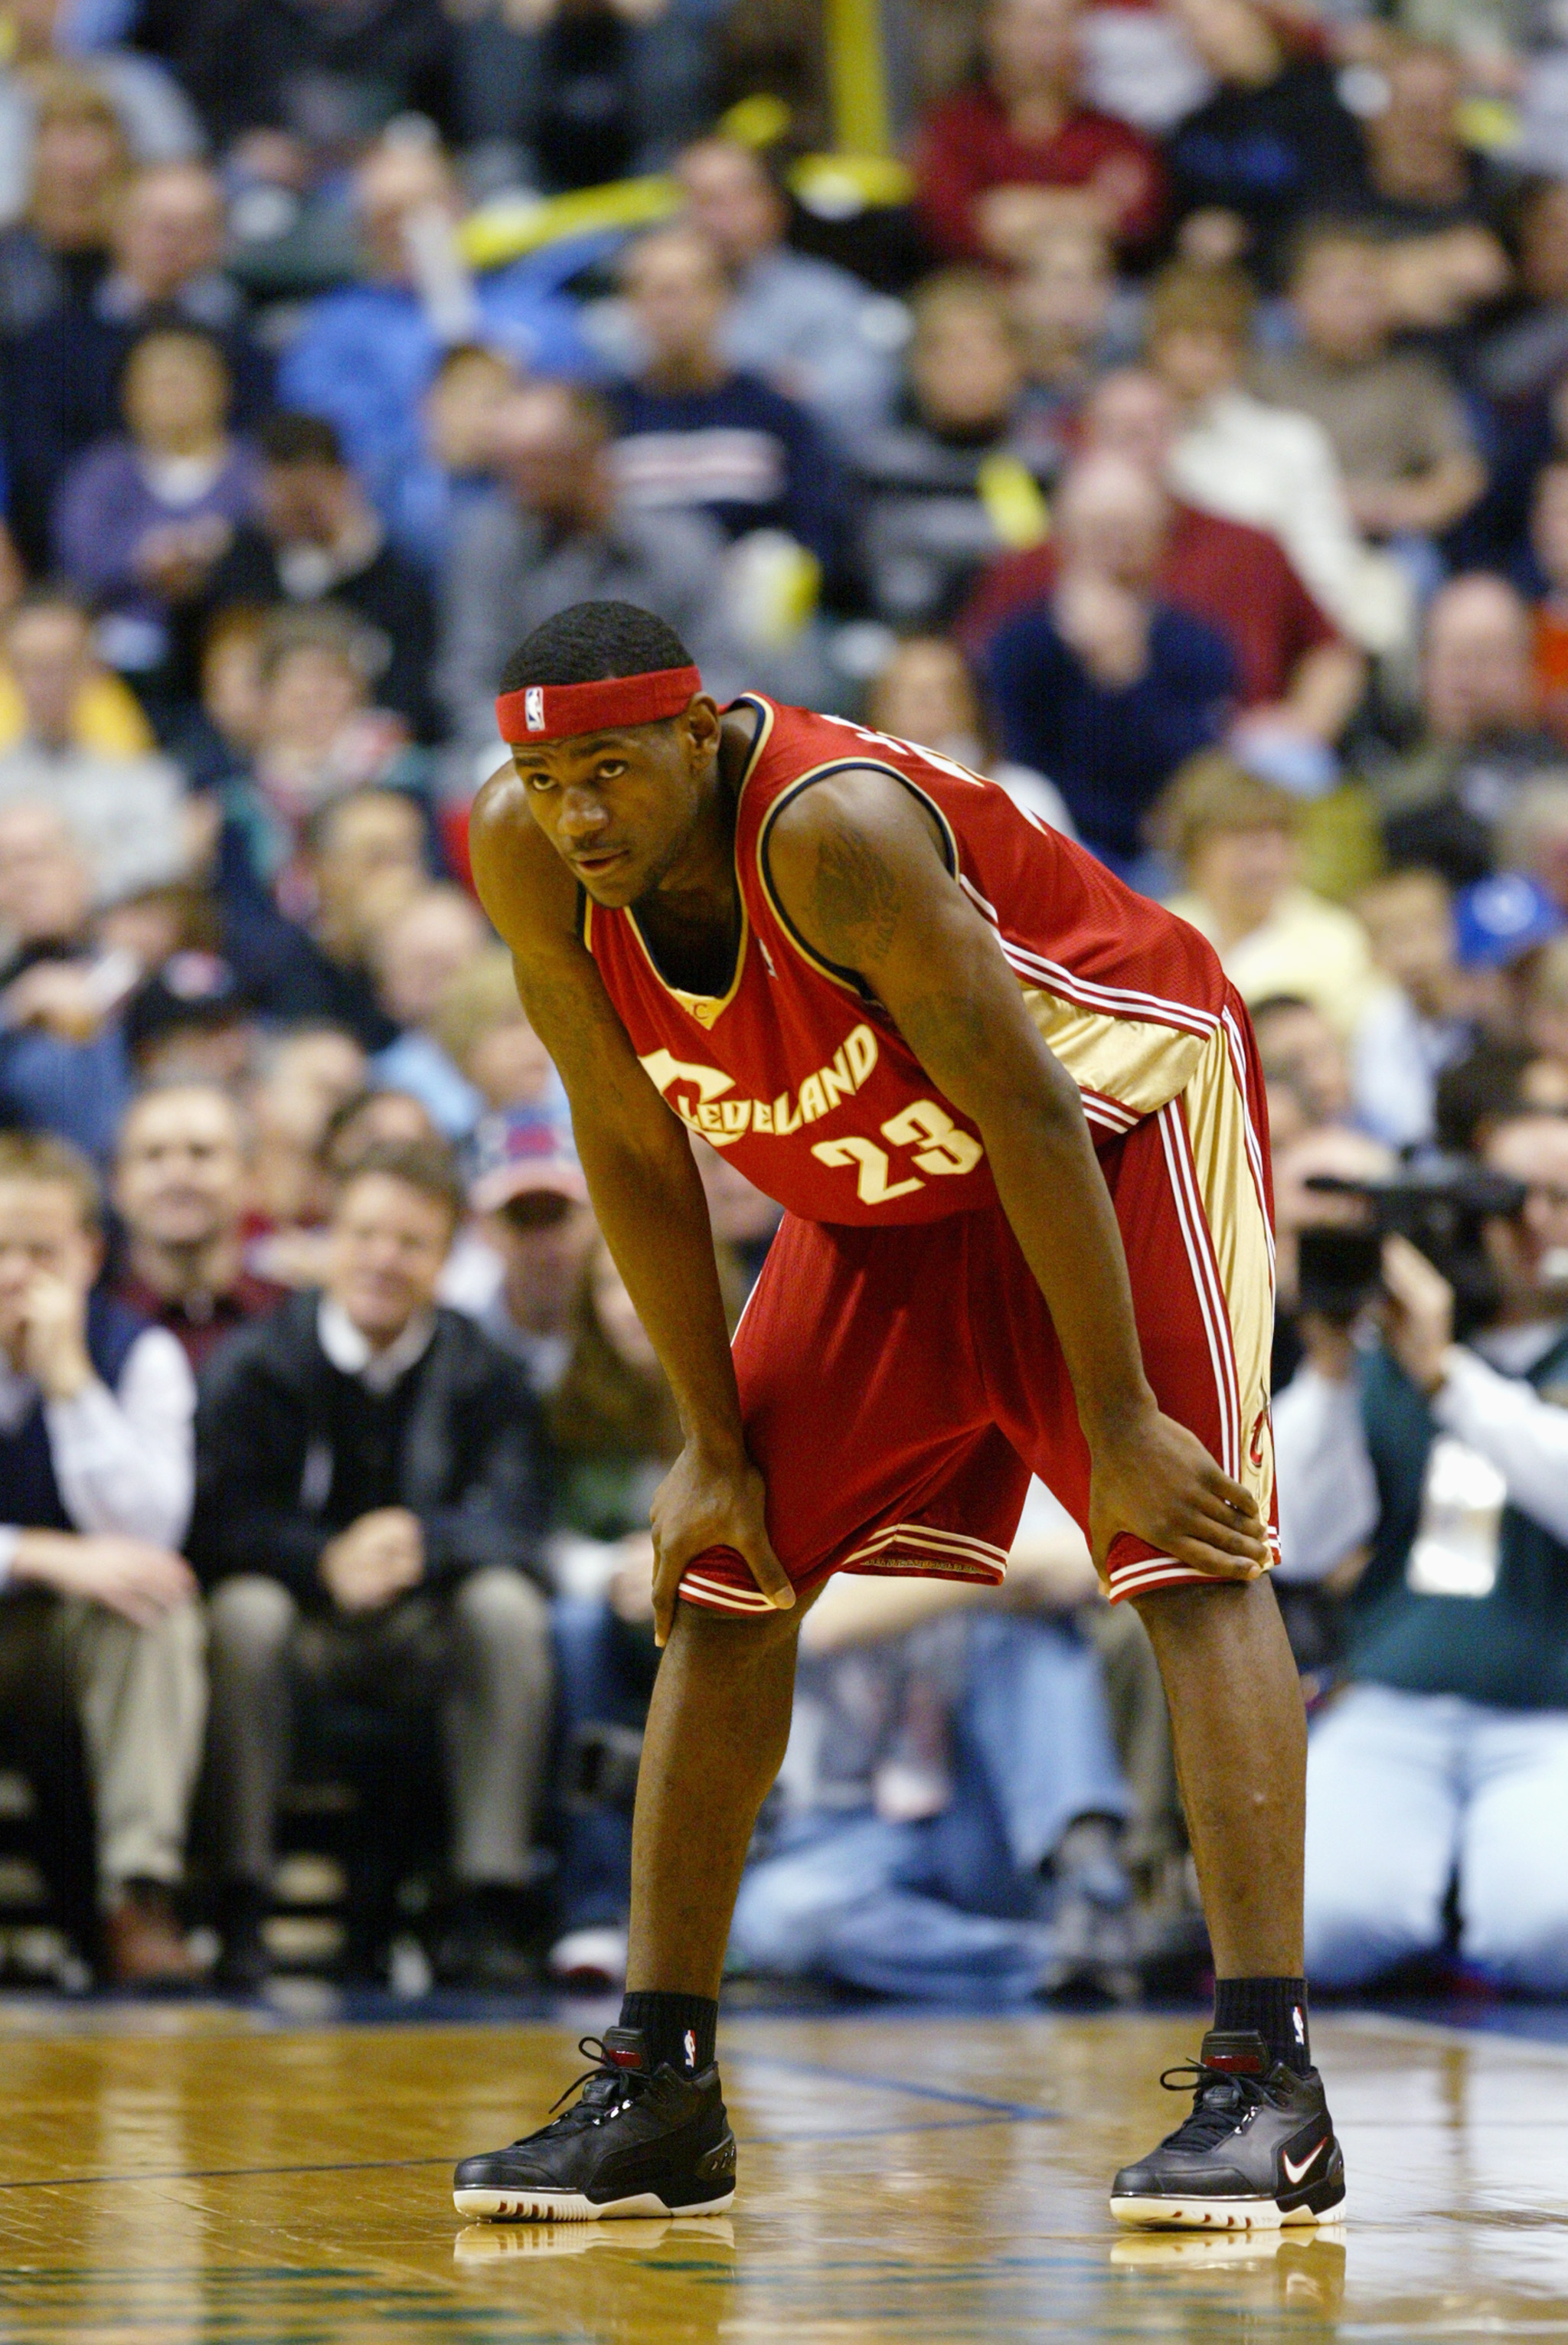 INDIANAPOLIS - DECEMBER 15:  LeBron James #23 of the Cleveland Cavaliers leans over on the court during the game against the Indiana Pacers at Conseco Fieldhouse on December 15, 2003 in Indianapolis, Indiana.  The Pacers won 95-85.  NOTE TO USER: User exp